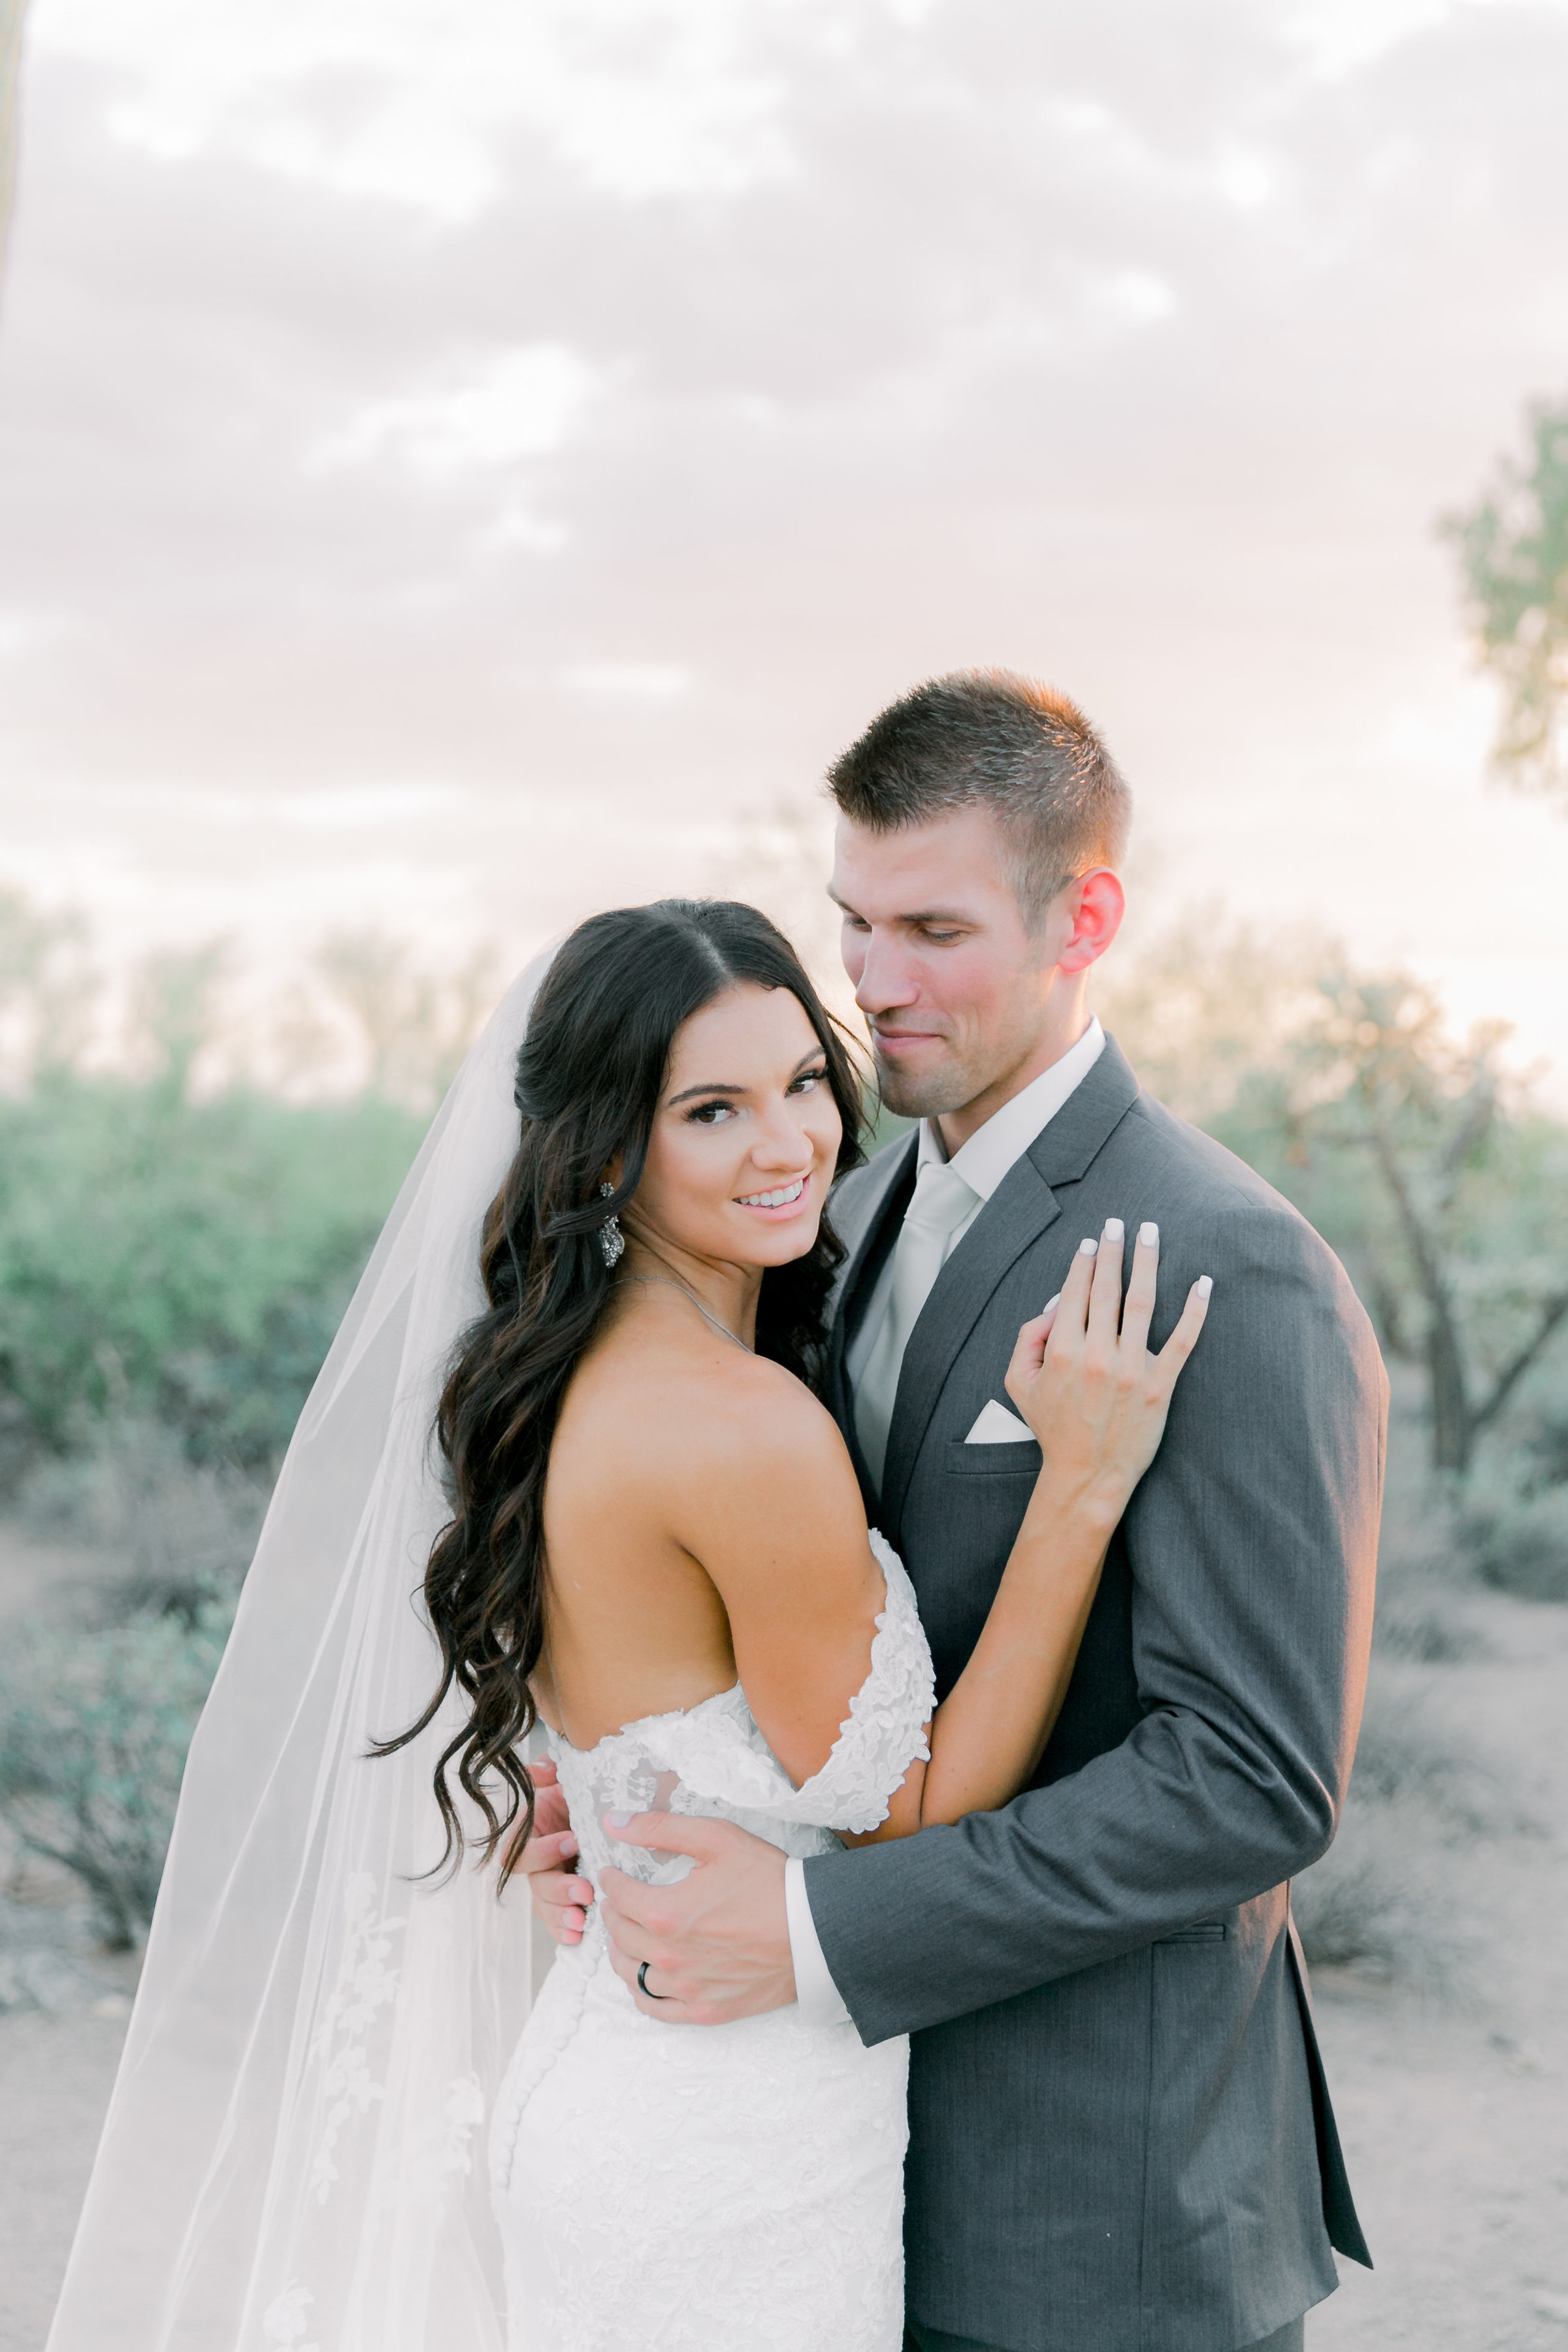 Karlie Colleen Photography - Arizona Wedding - The Paseo Venue - Jackie & Ryan -627